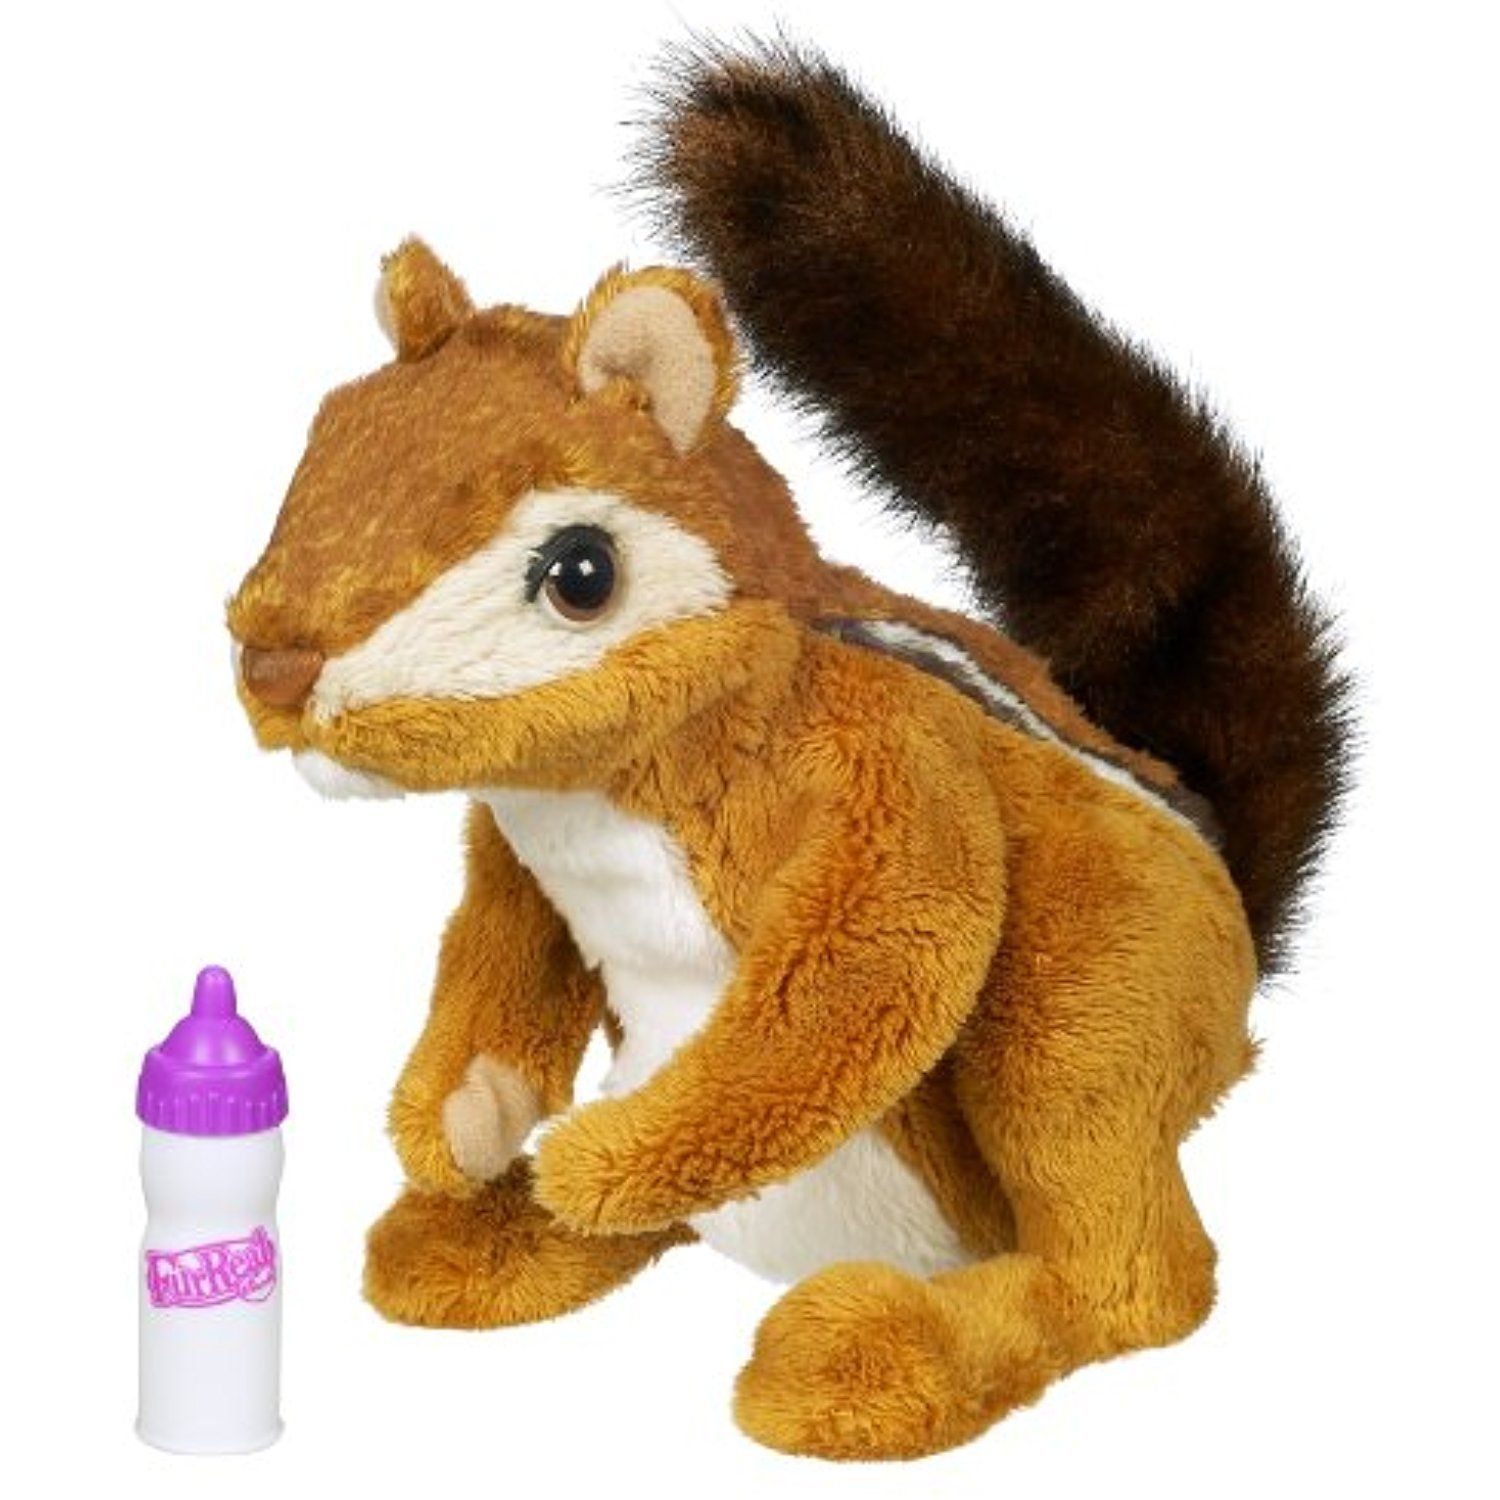 Furreal Friends Newborn Chipmunk Toy Want Additional Info Click On The Image This Is An Affiliate Link Kidselectronic Fur Real Friends Chipmunks Toys